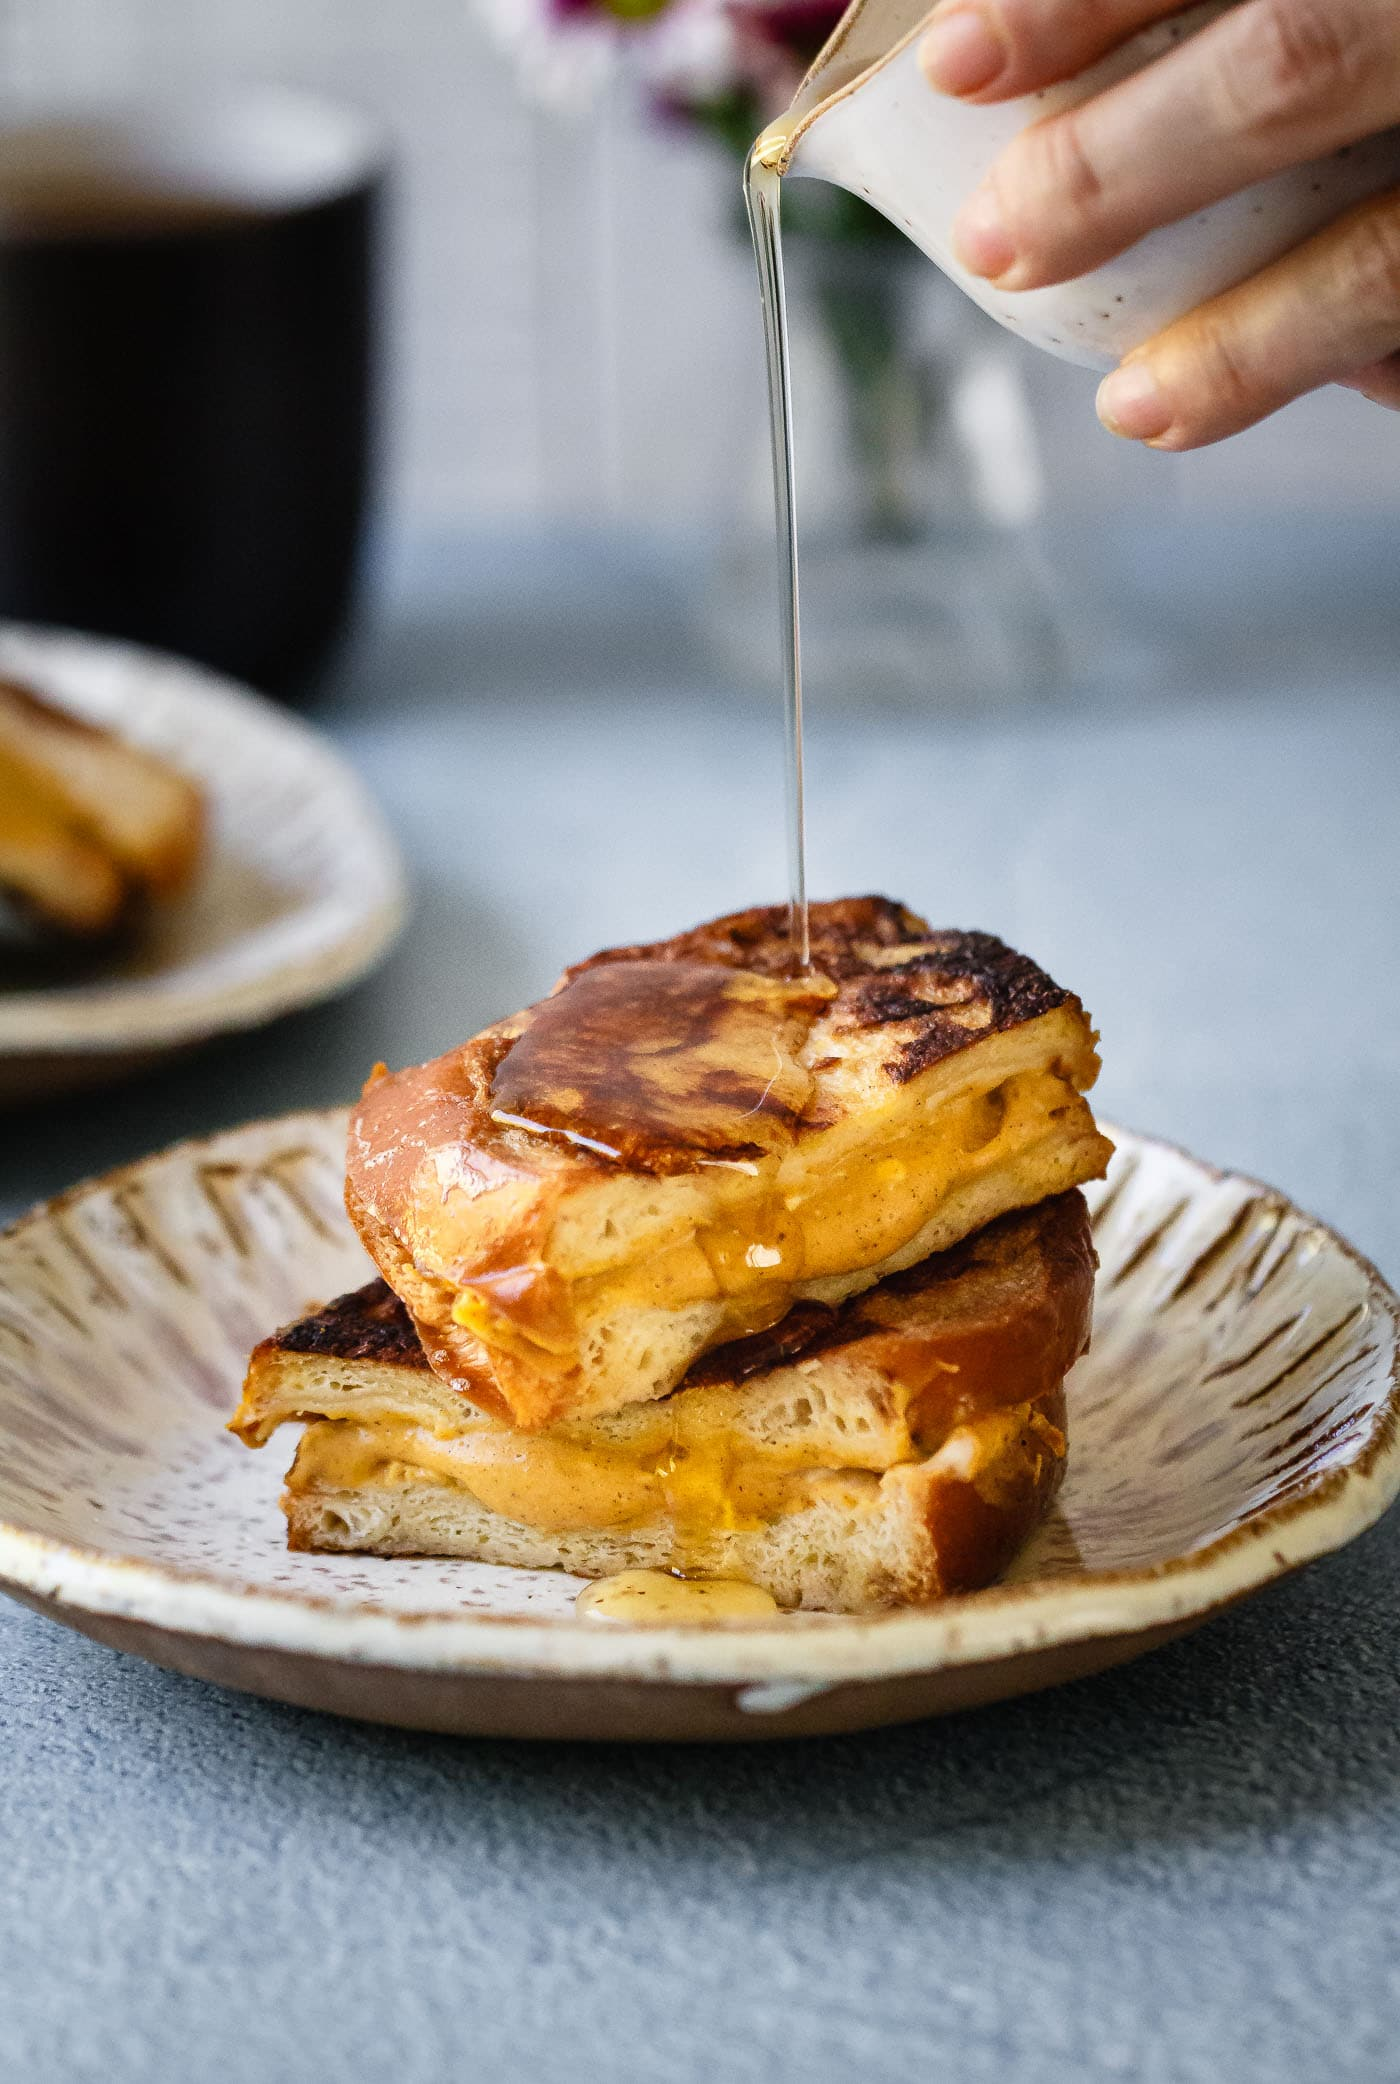 maple syrup being poured on top of Pumpkin Cheesecake Stuffed French Toast